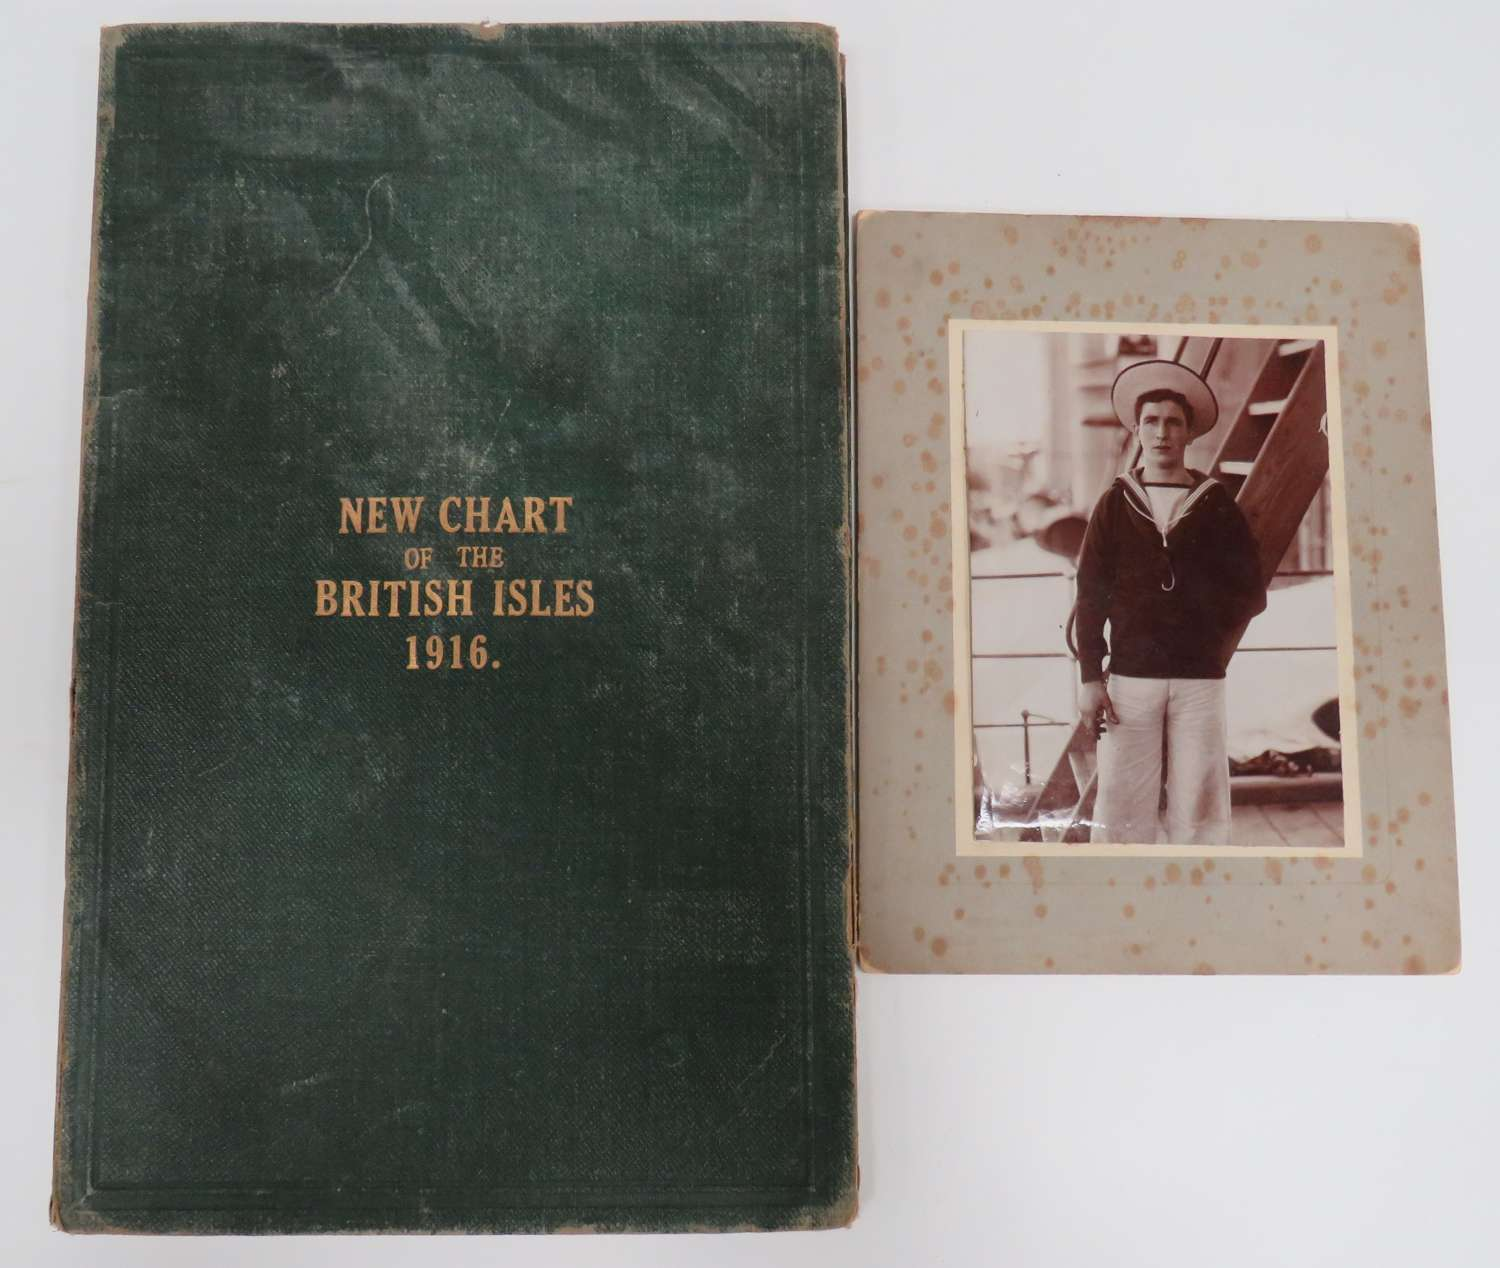 1916 Chart of the British Isles Folder and Naval Photograph